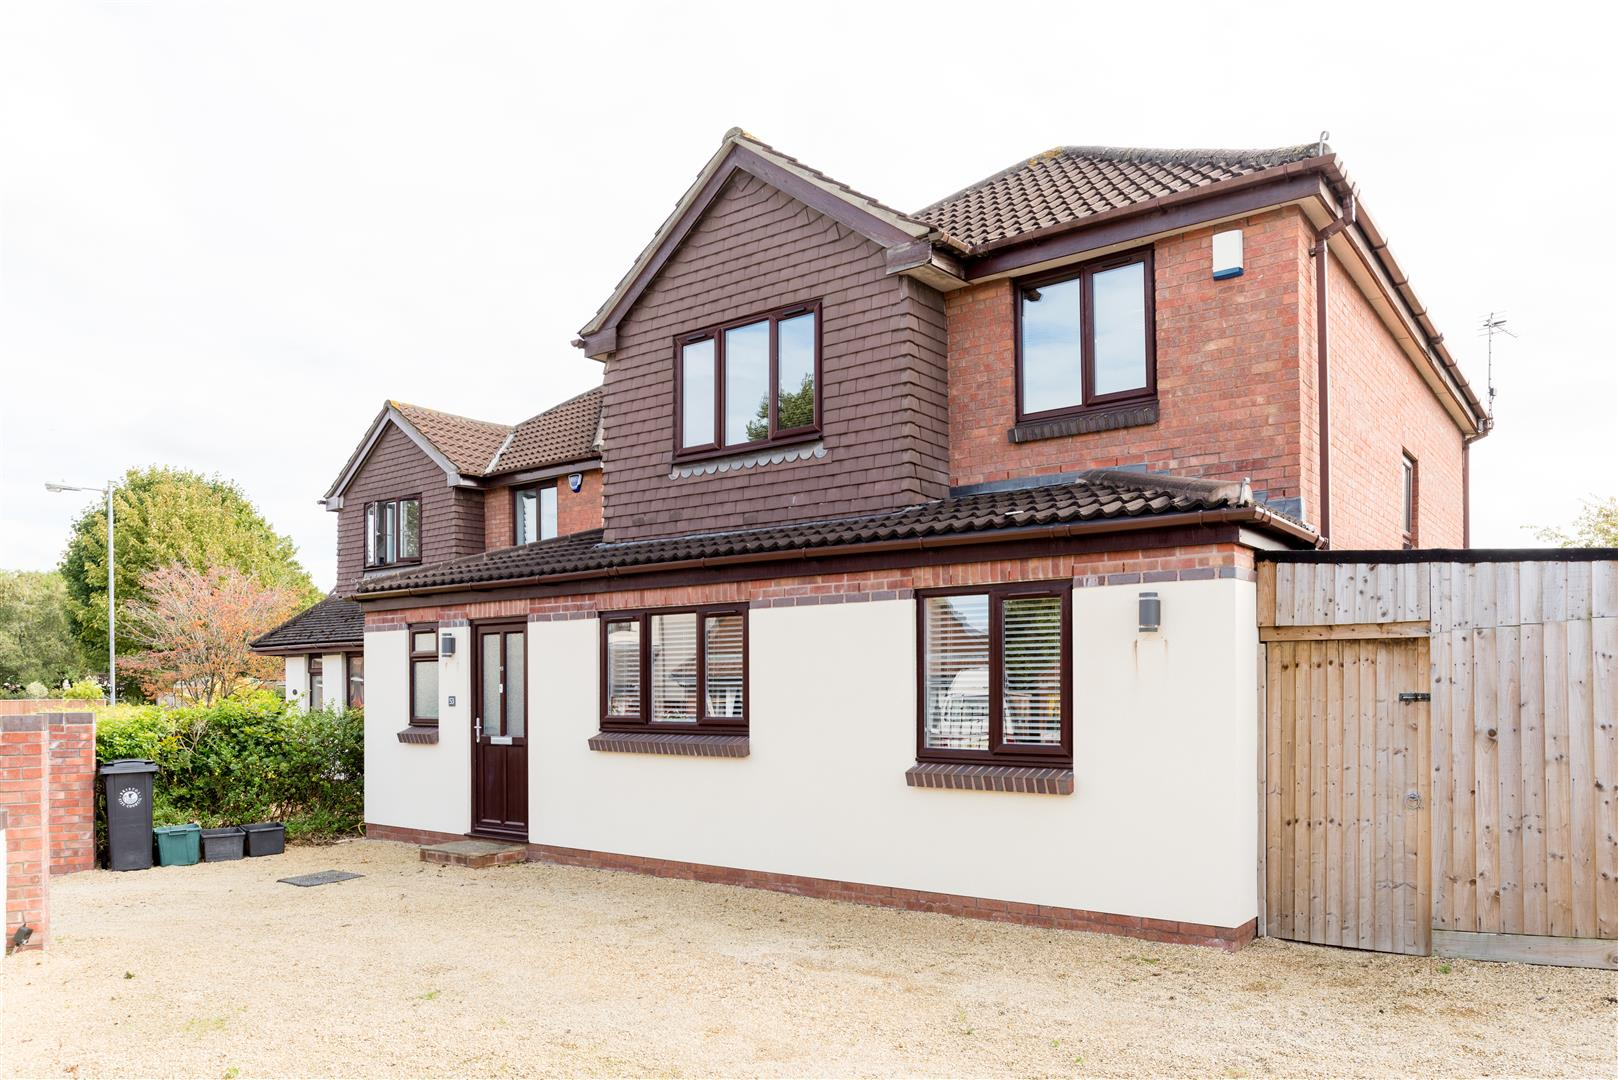 3 bed house for sale in Fallodon Way, Bristol  - Property Image 1